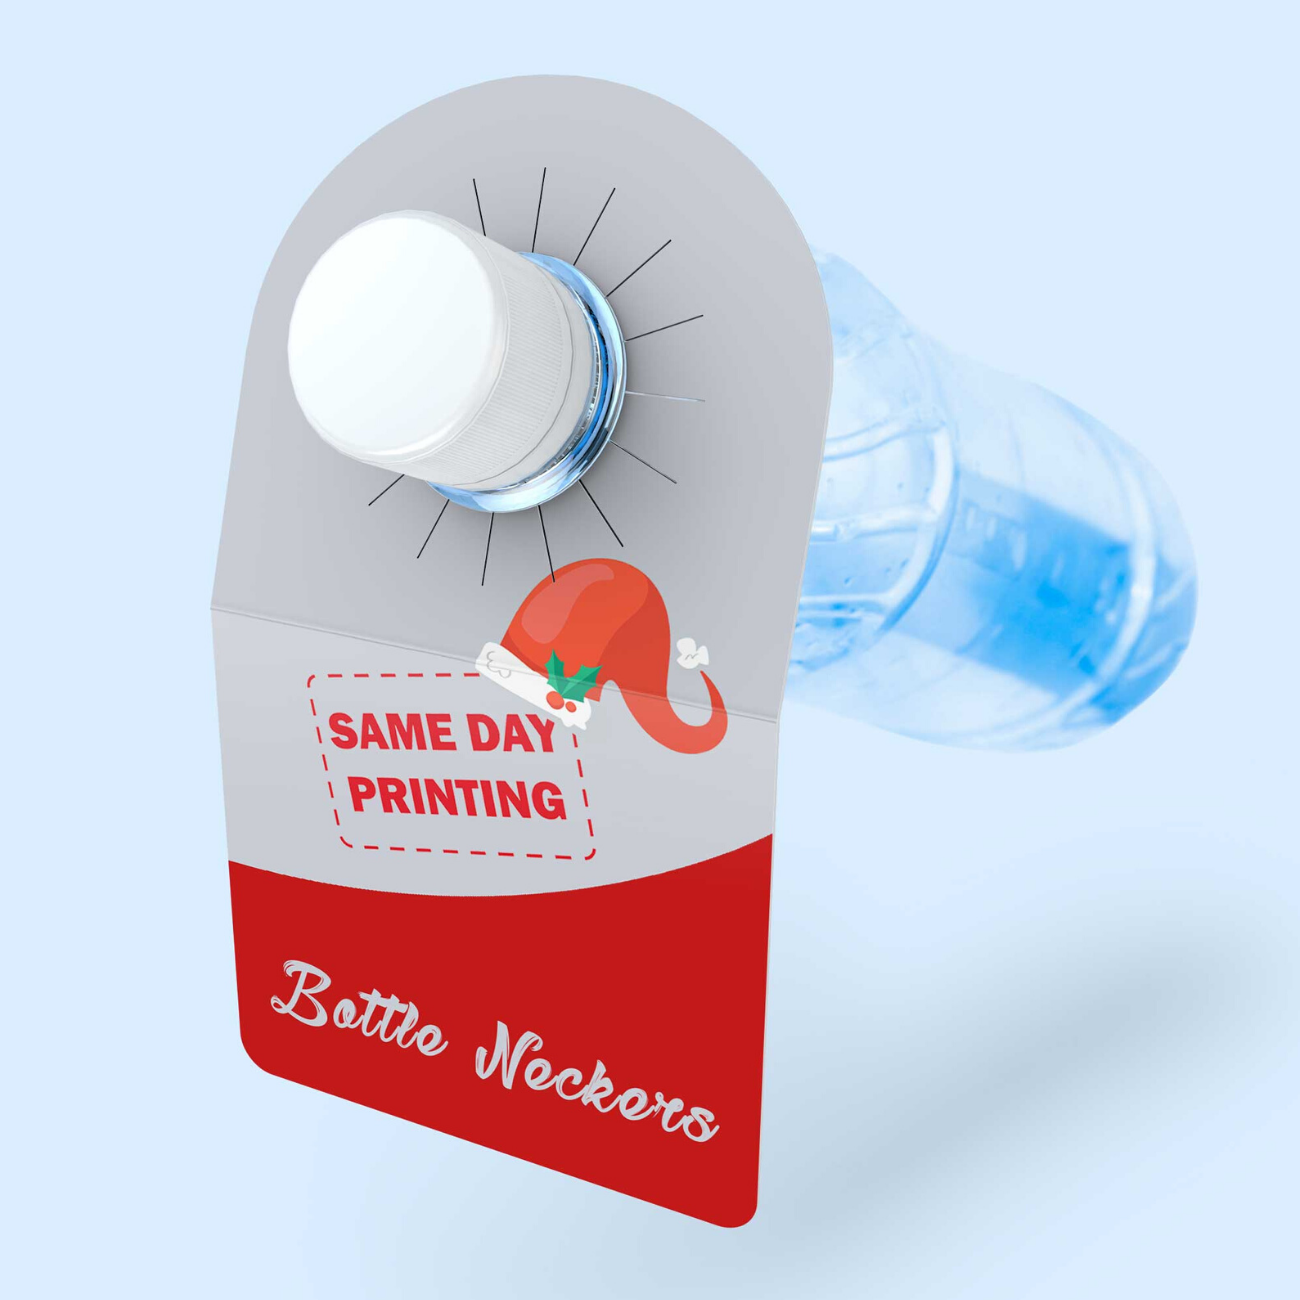 12 Days of Christmas Marketing tips and ideas with bottle neckers